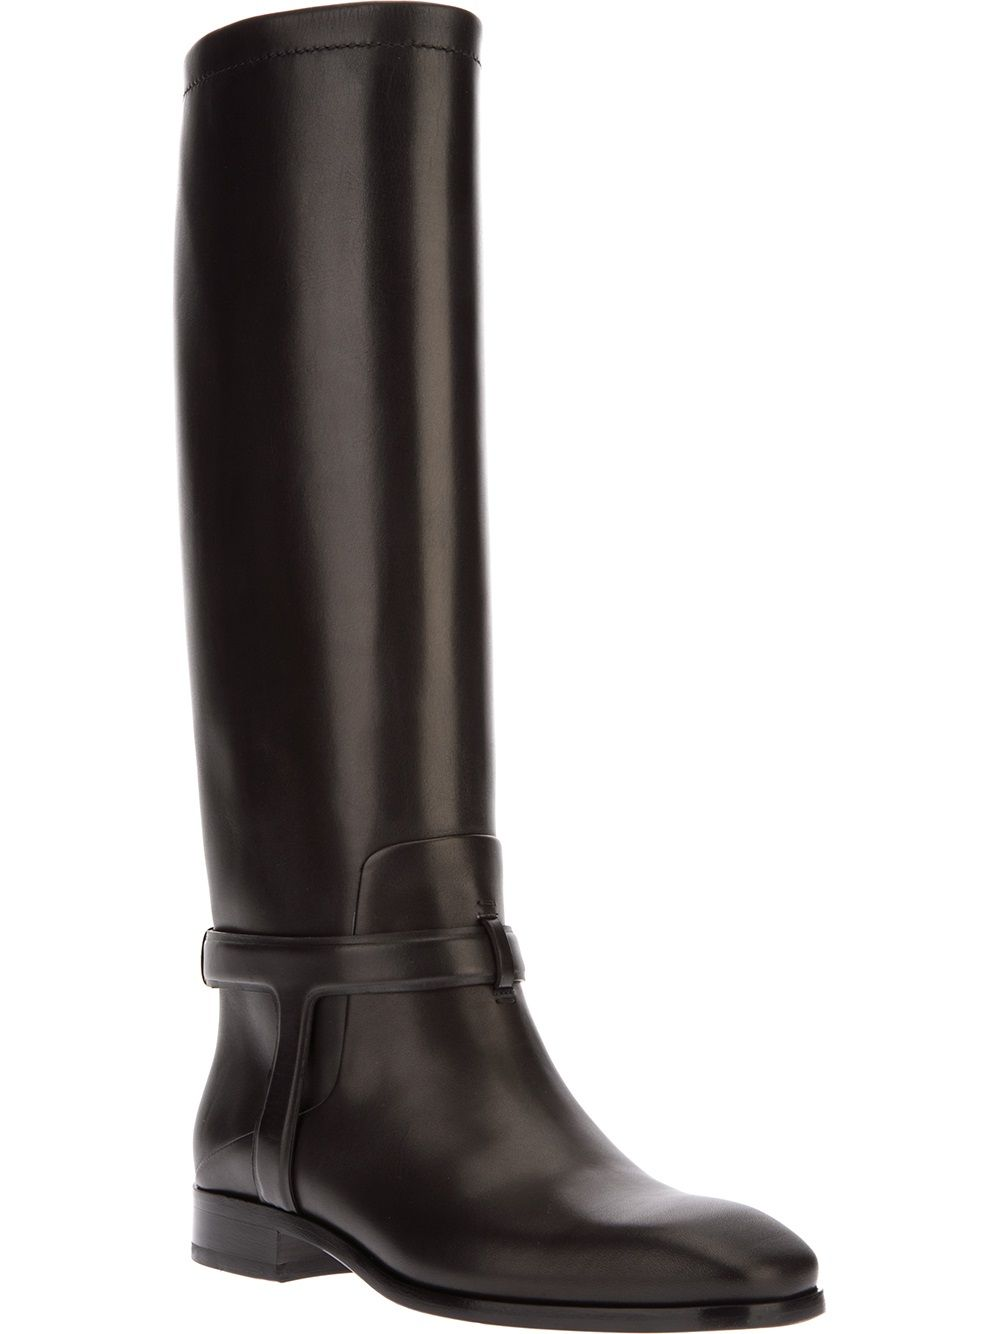 CHRISTIAN DIOR - Black Urbain knee high boot   #christiandior #dior #diorboots #boots #blackboots www.woman.jofre.eu